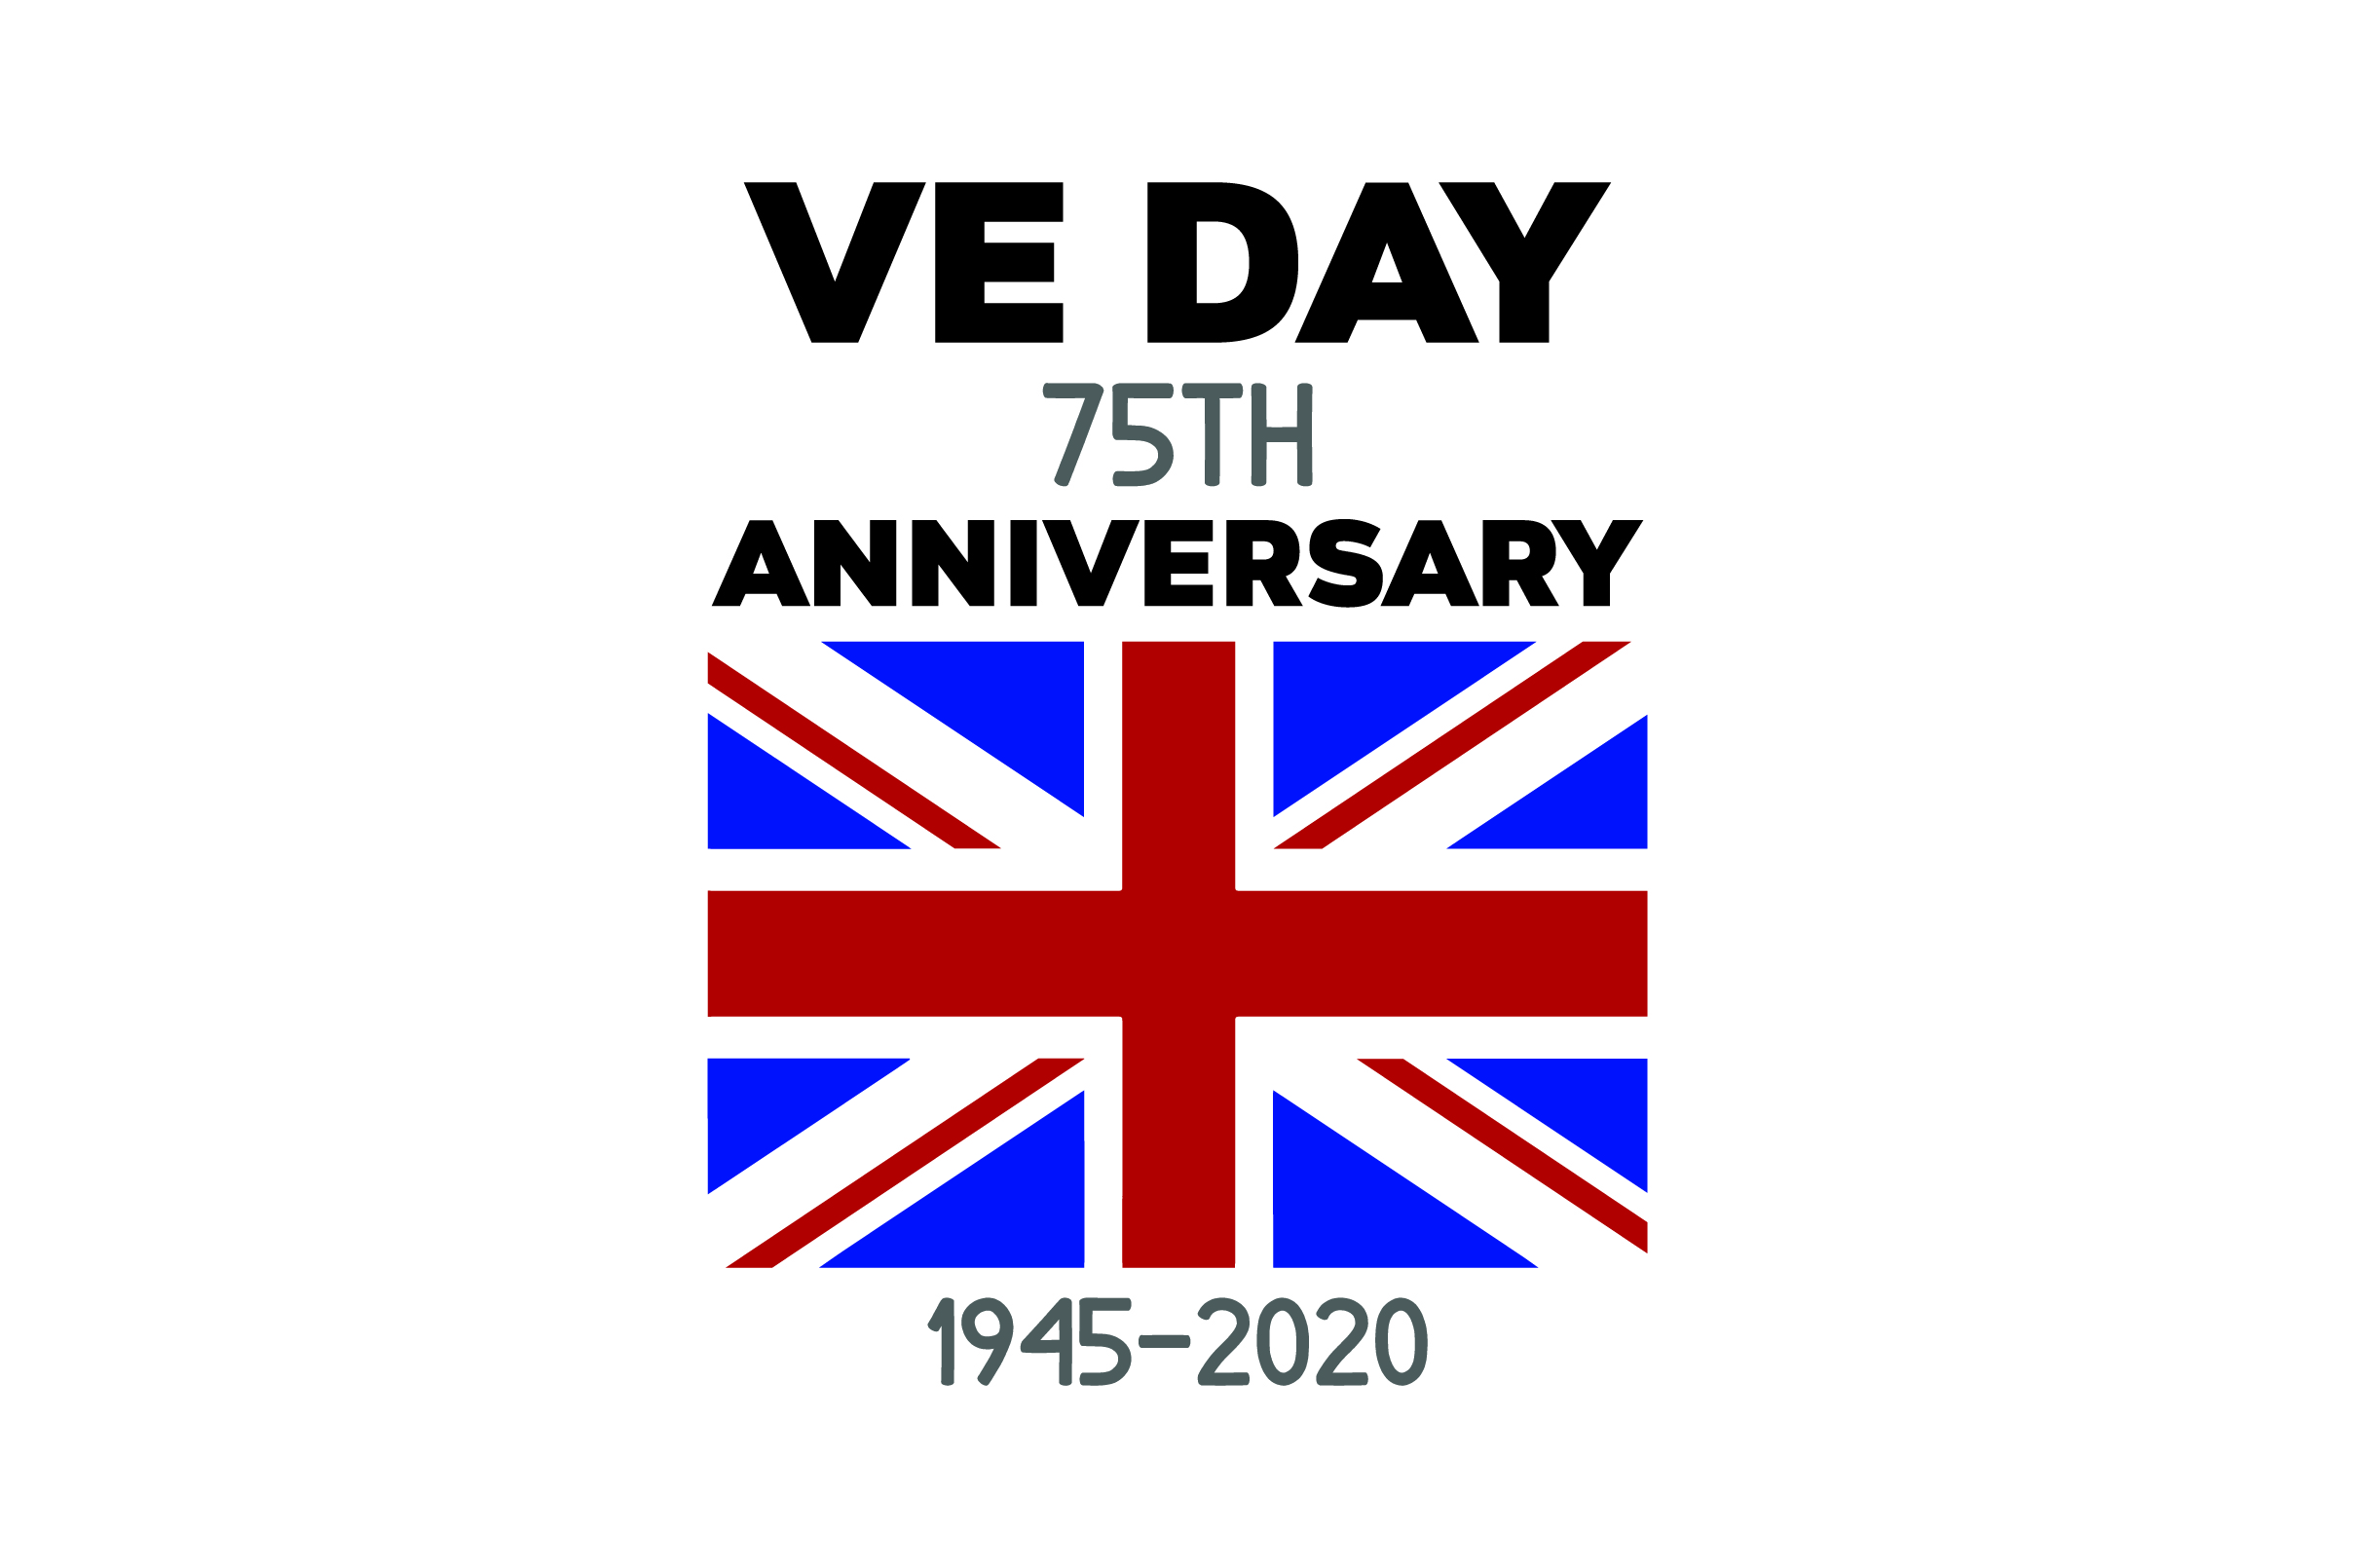 Download Free Ve Day 75th Anniversary 1945 2020 Svg Cut File By Creative for Cricut Explore, Silhouette and other cutting machines.